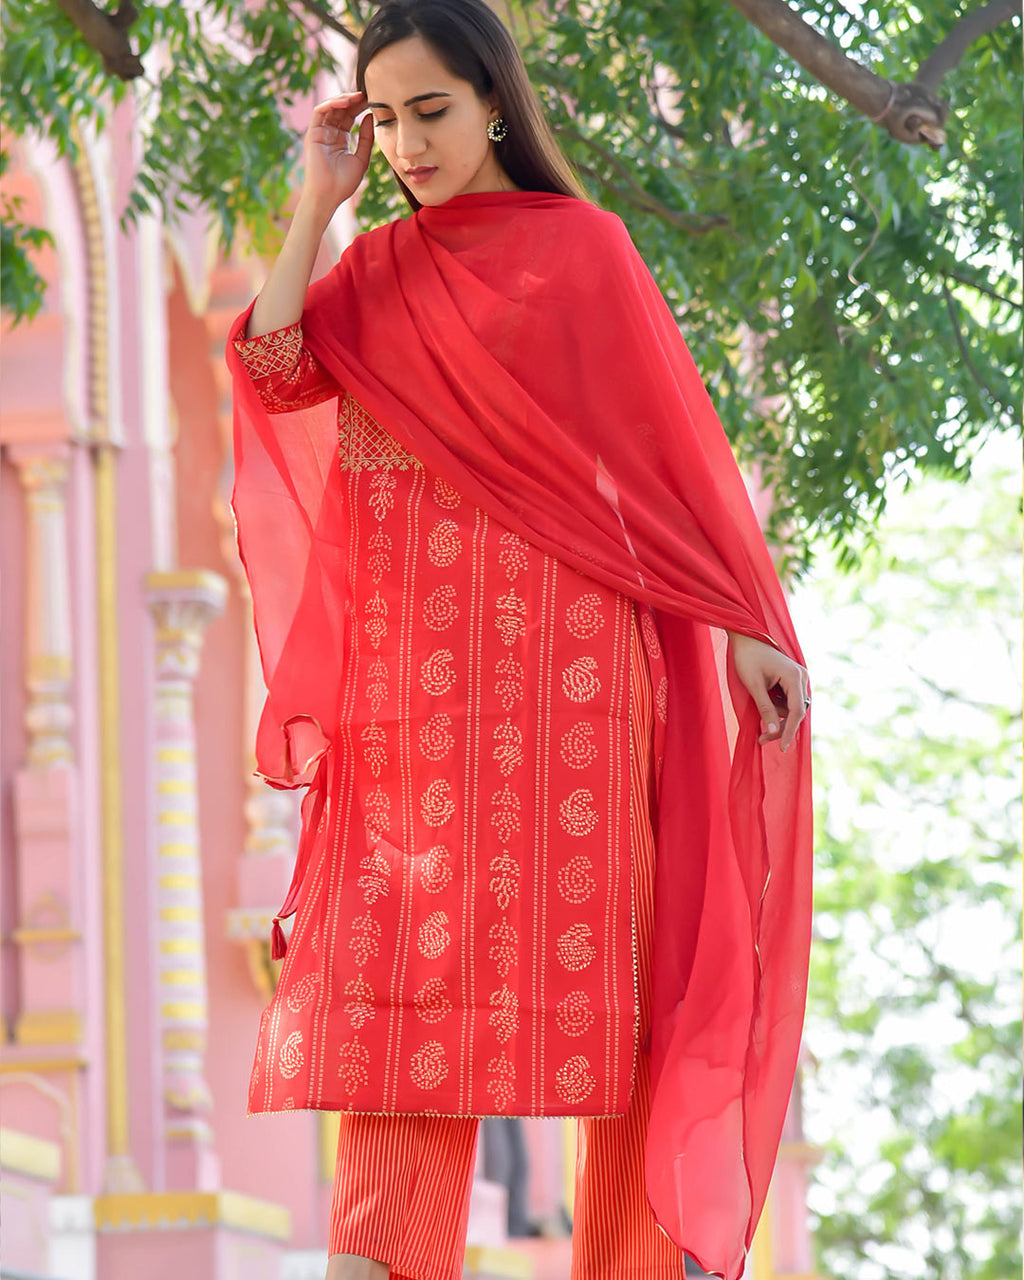 TOMATO RED BANDHEJ SUIT SET